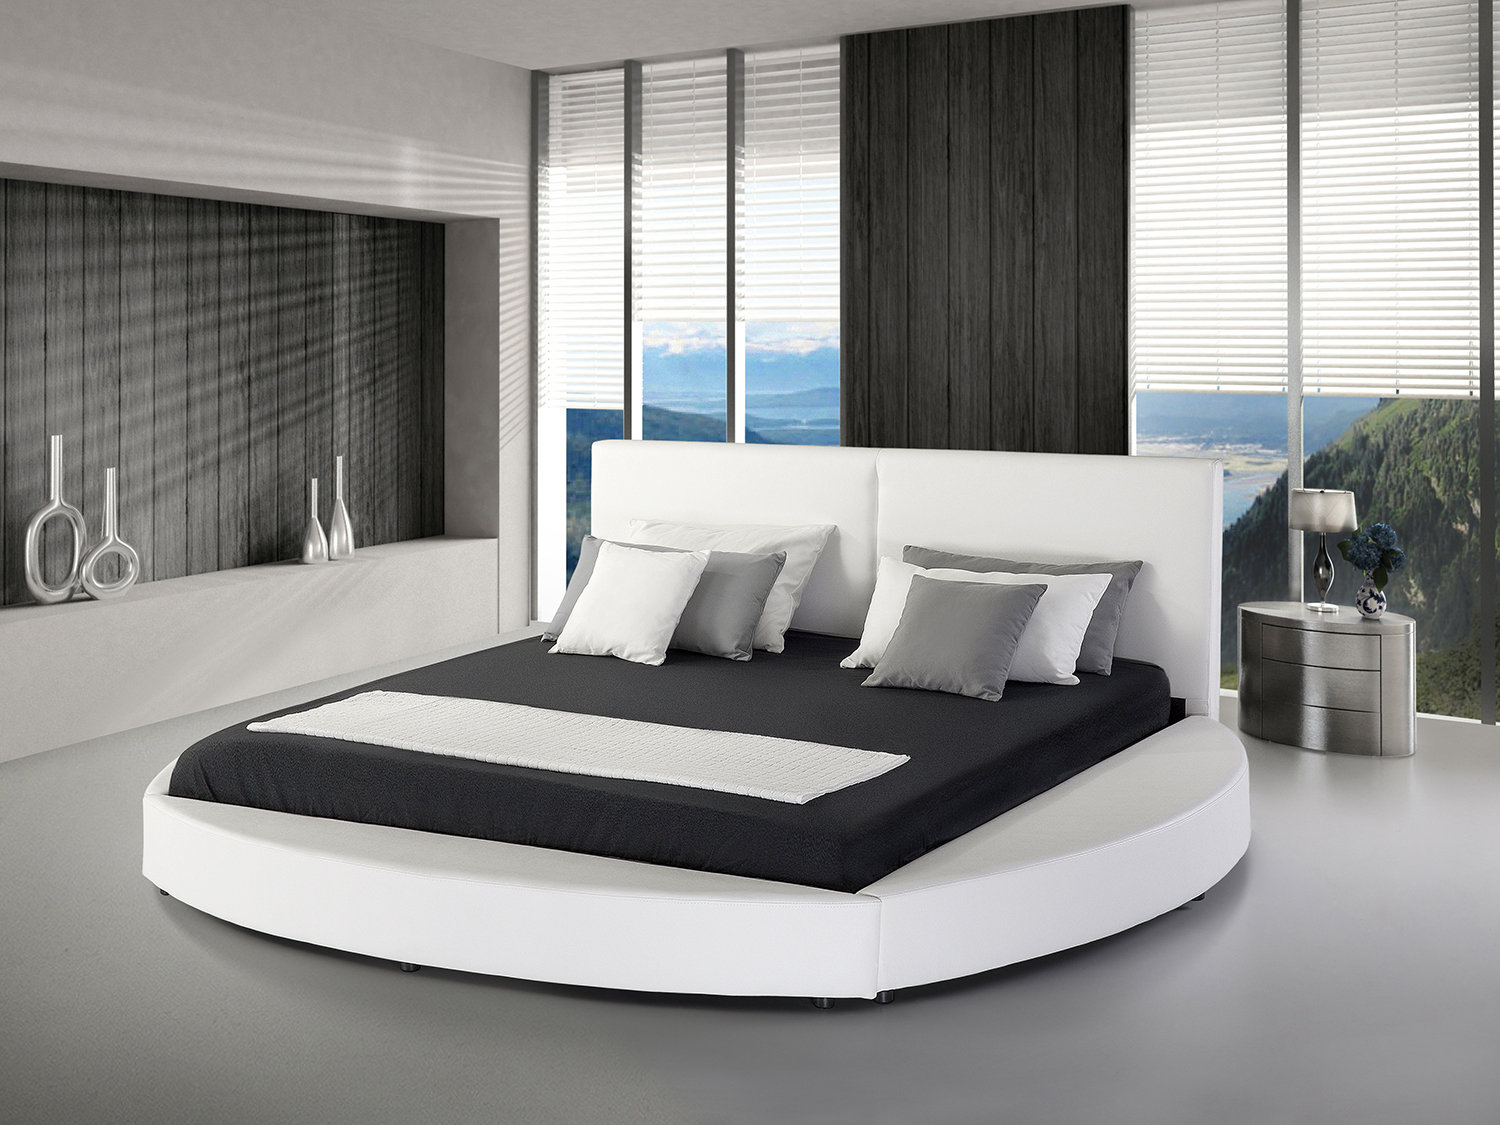 bed super king size bed frame 180x200 cm leather round white ebay. Black Bedroom Furniture Sets. Home Design Ideas